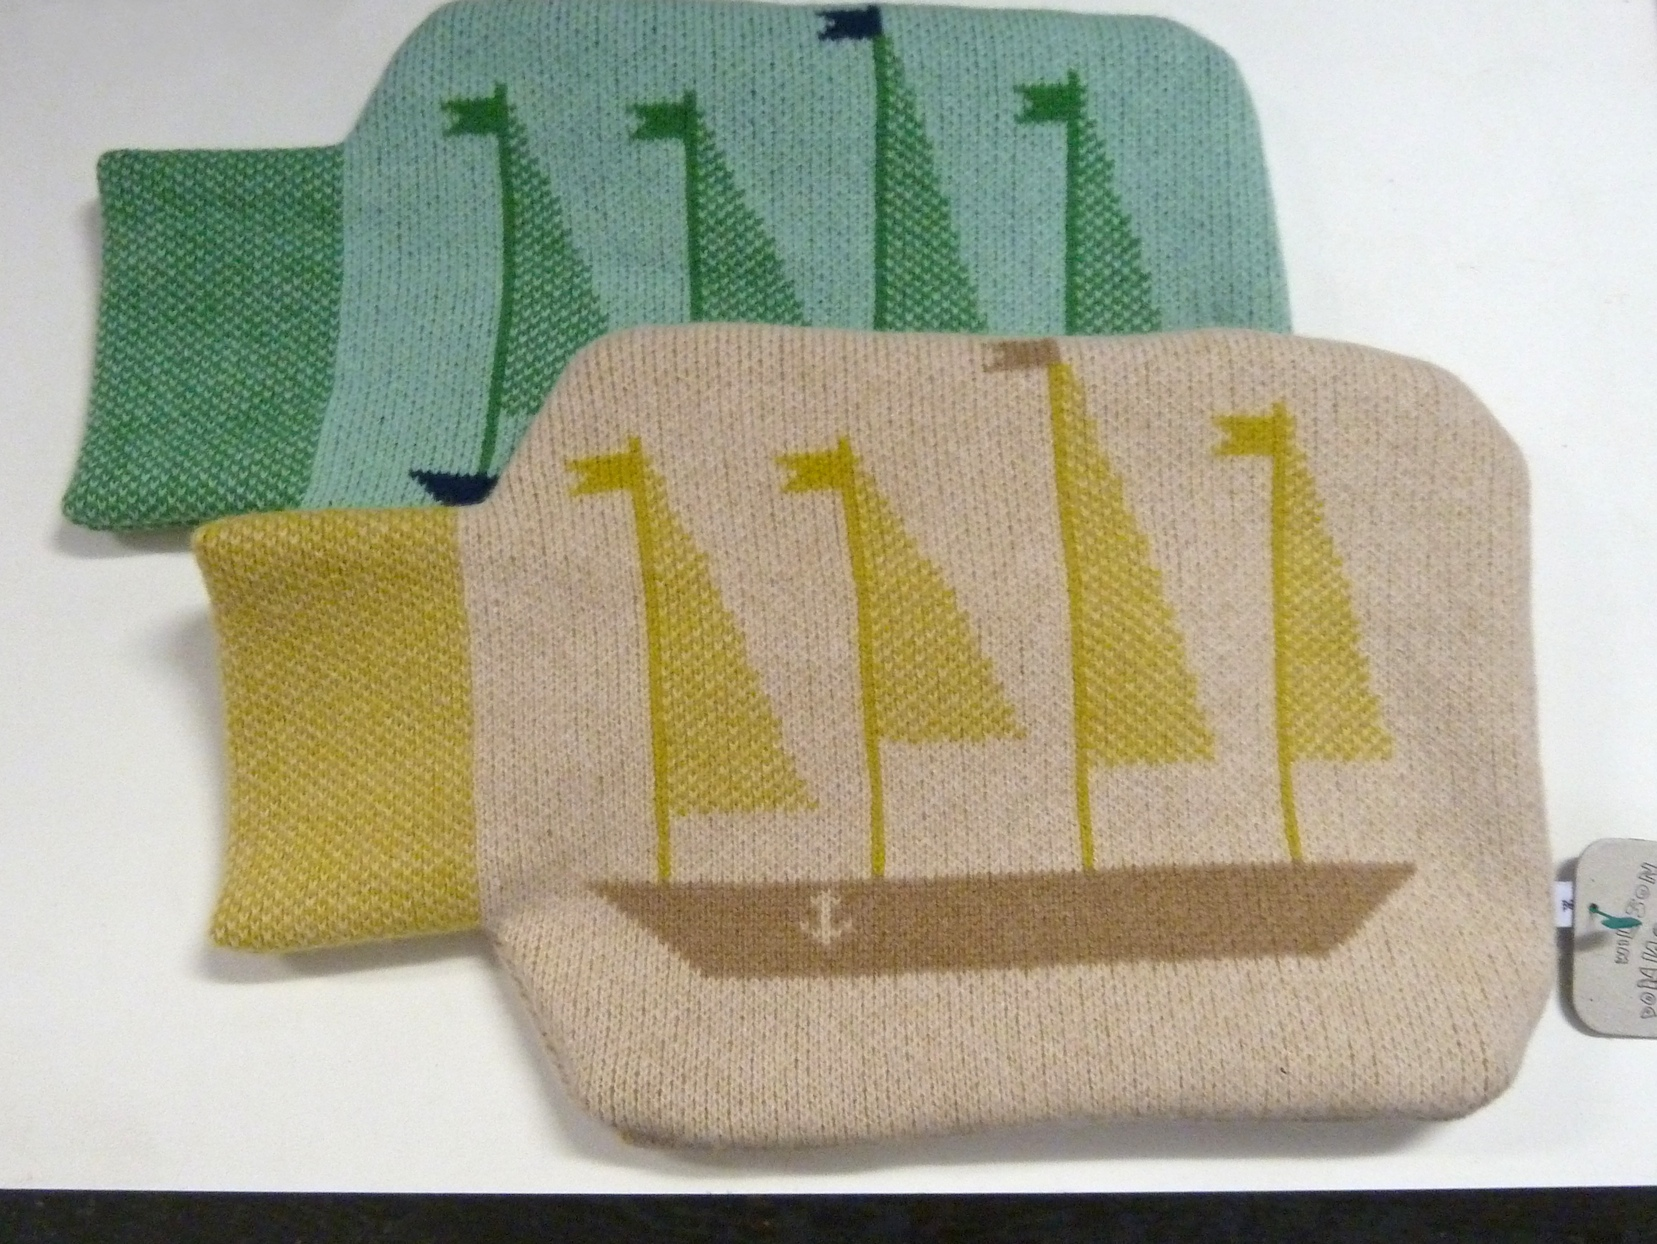 ' Ship in a bottle' hot water bottle covers from Donna Wilson for winter 2011